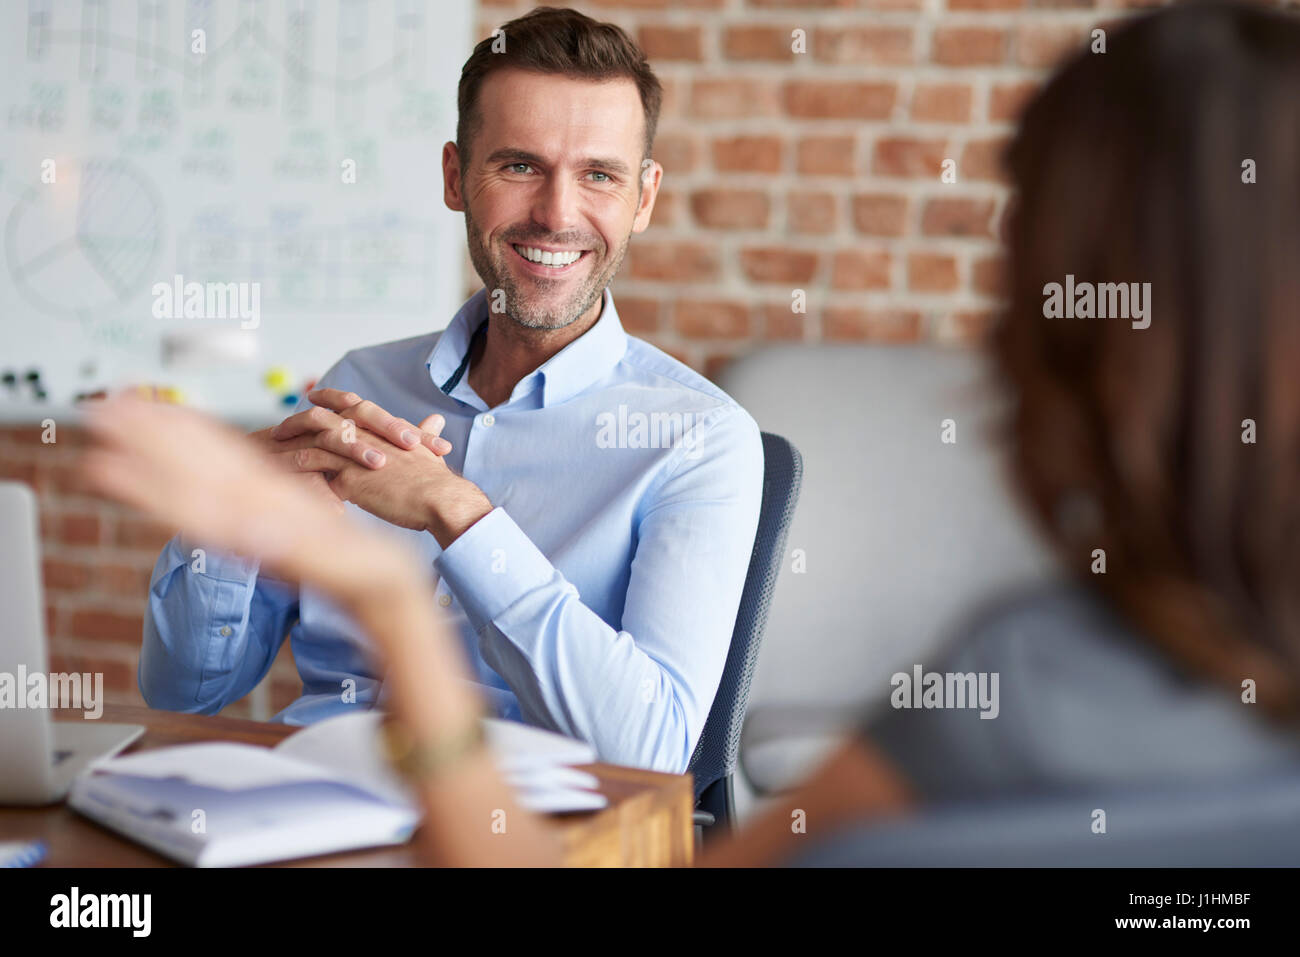 Job interview in the company - Stock Image